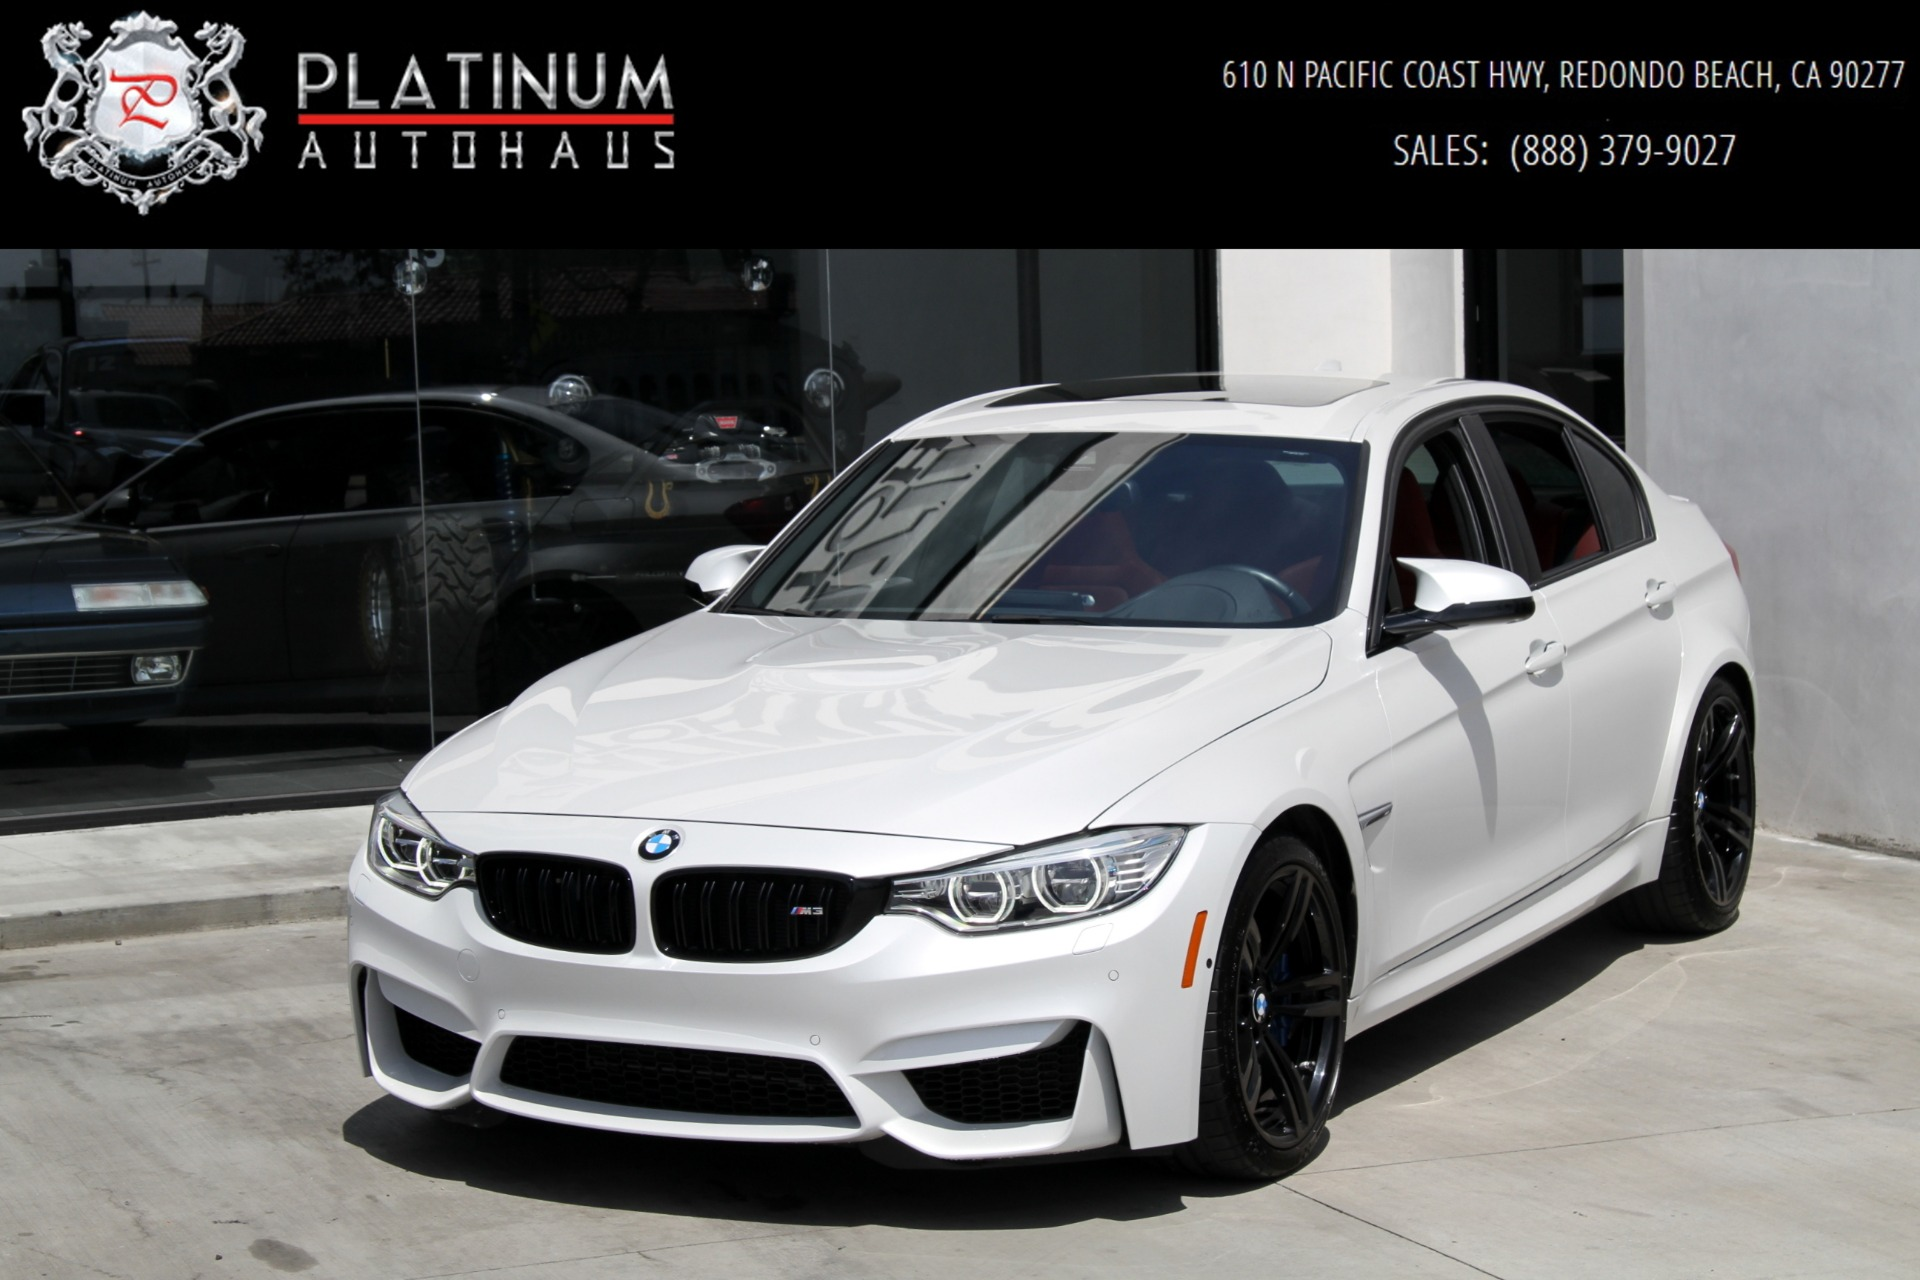 2015 M3 For Sale >> 2015 Bmw M3 Stock 6166 For Sale Near Redondo Beach Ca